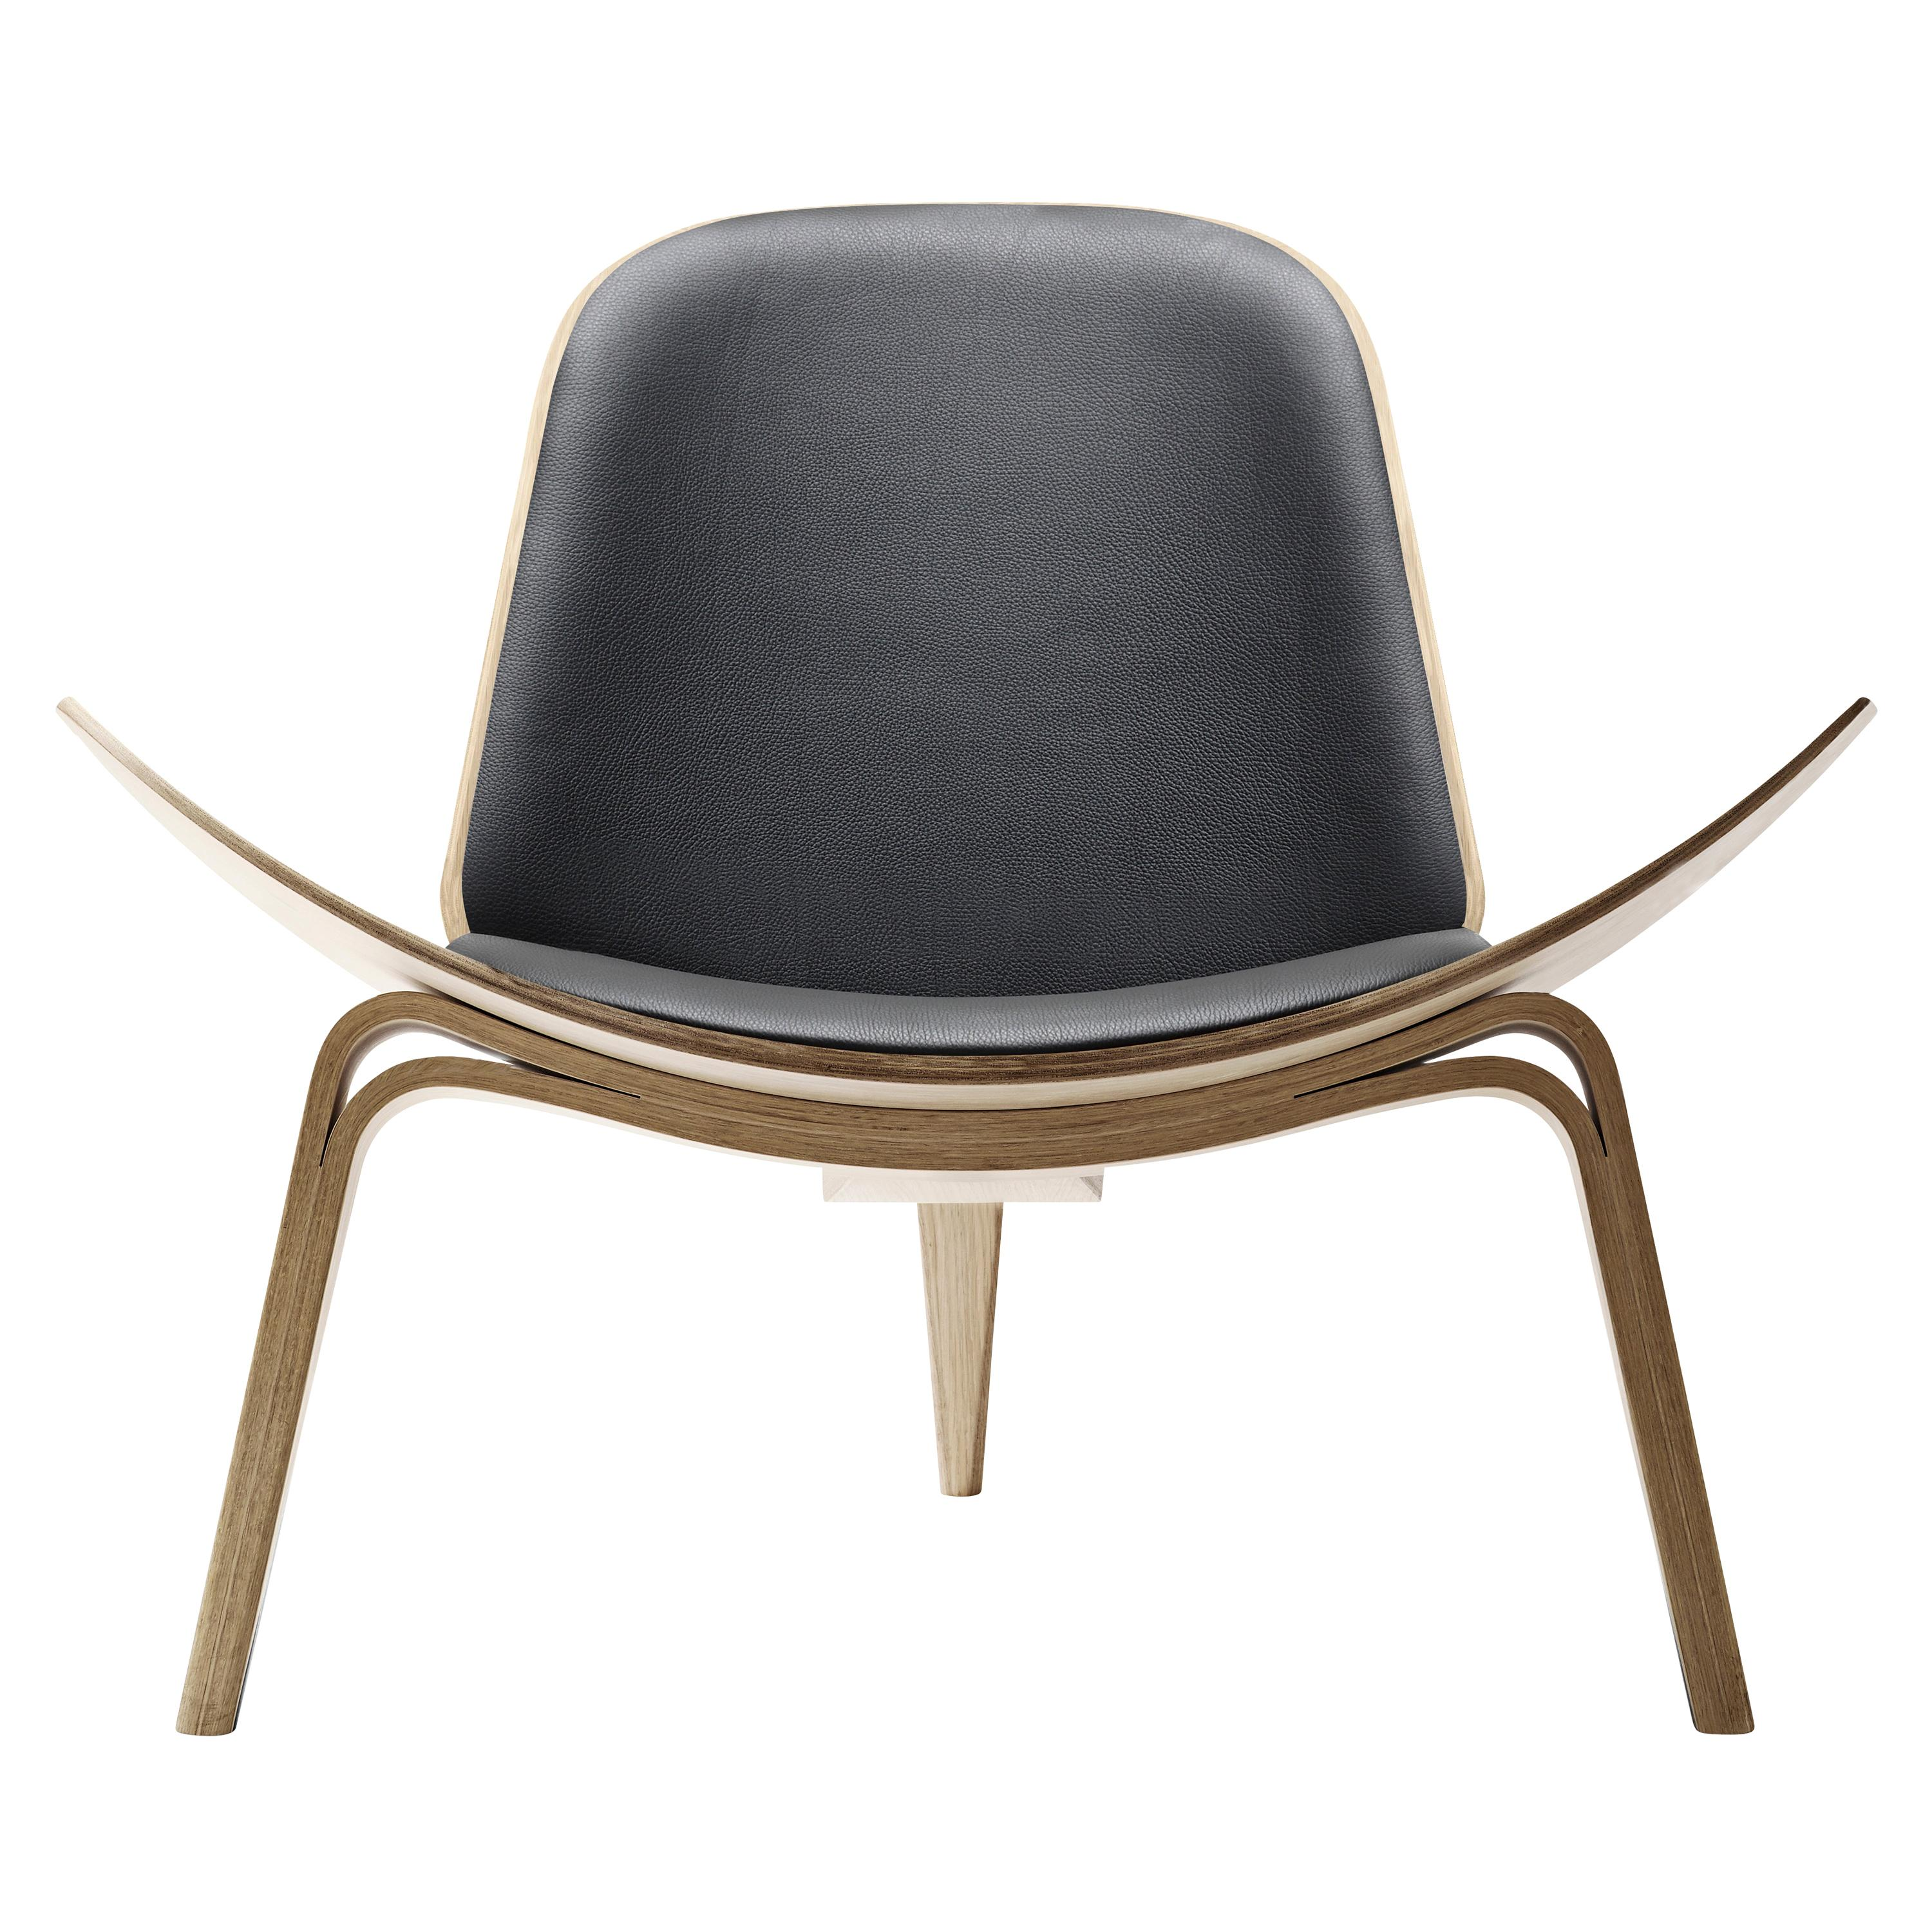 CH07 Shell Chair in Oak White Oil with Leather Seat by Hans J. Wegner